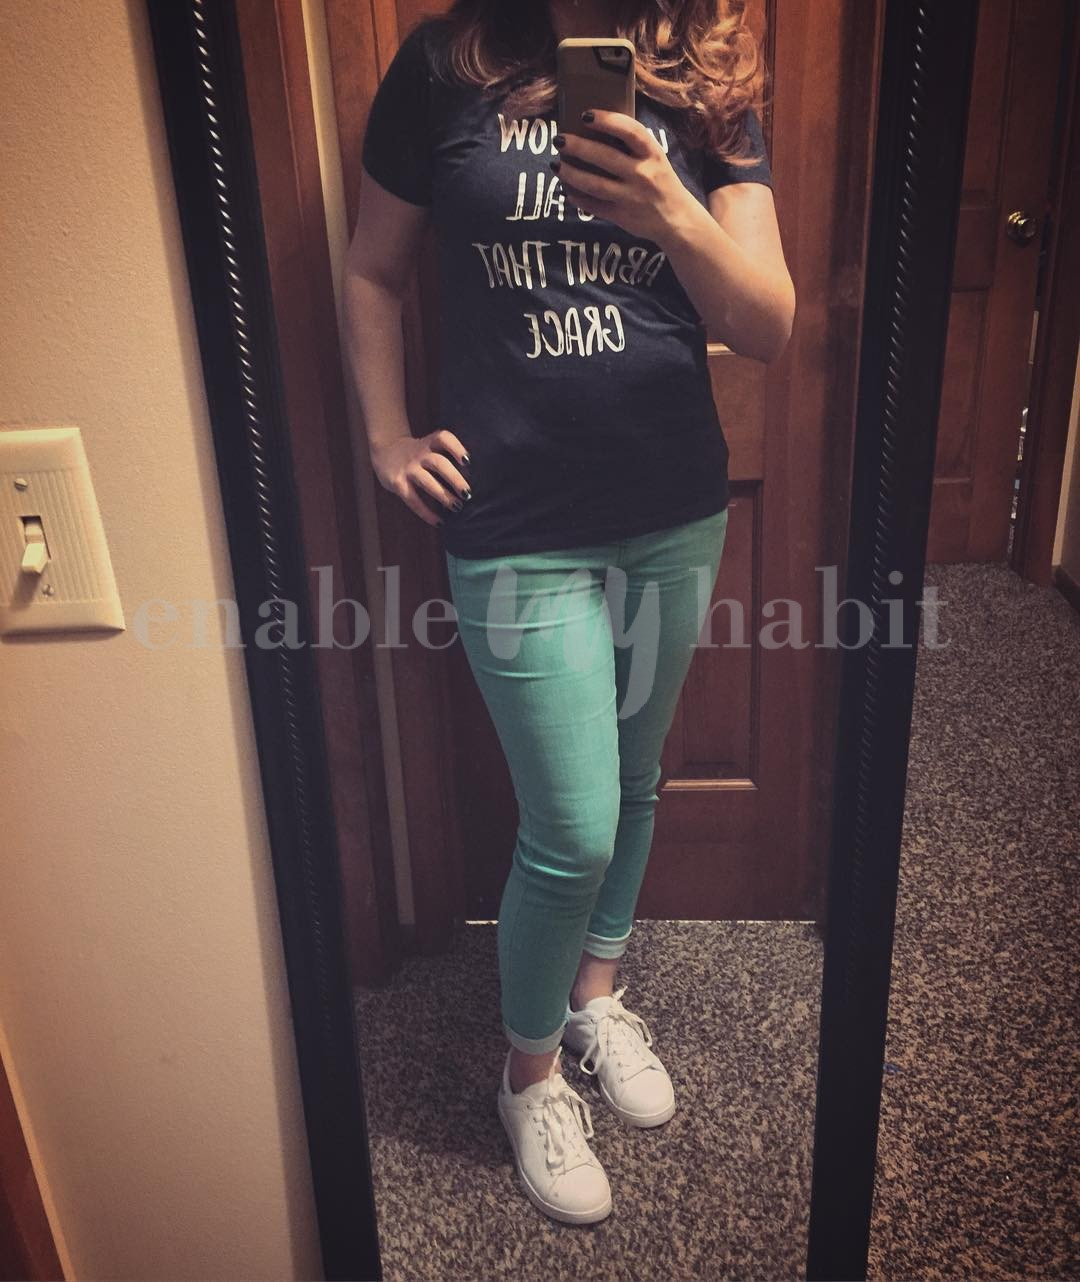 After only leaving the house to go to the office for over a week, I escaped to Walmart (found some cute graphic tees!) and downtown for the last night. Custom tee, @celebritypinkjeans skinnies that I flippin' LOVE, and @justfabonline sneakers